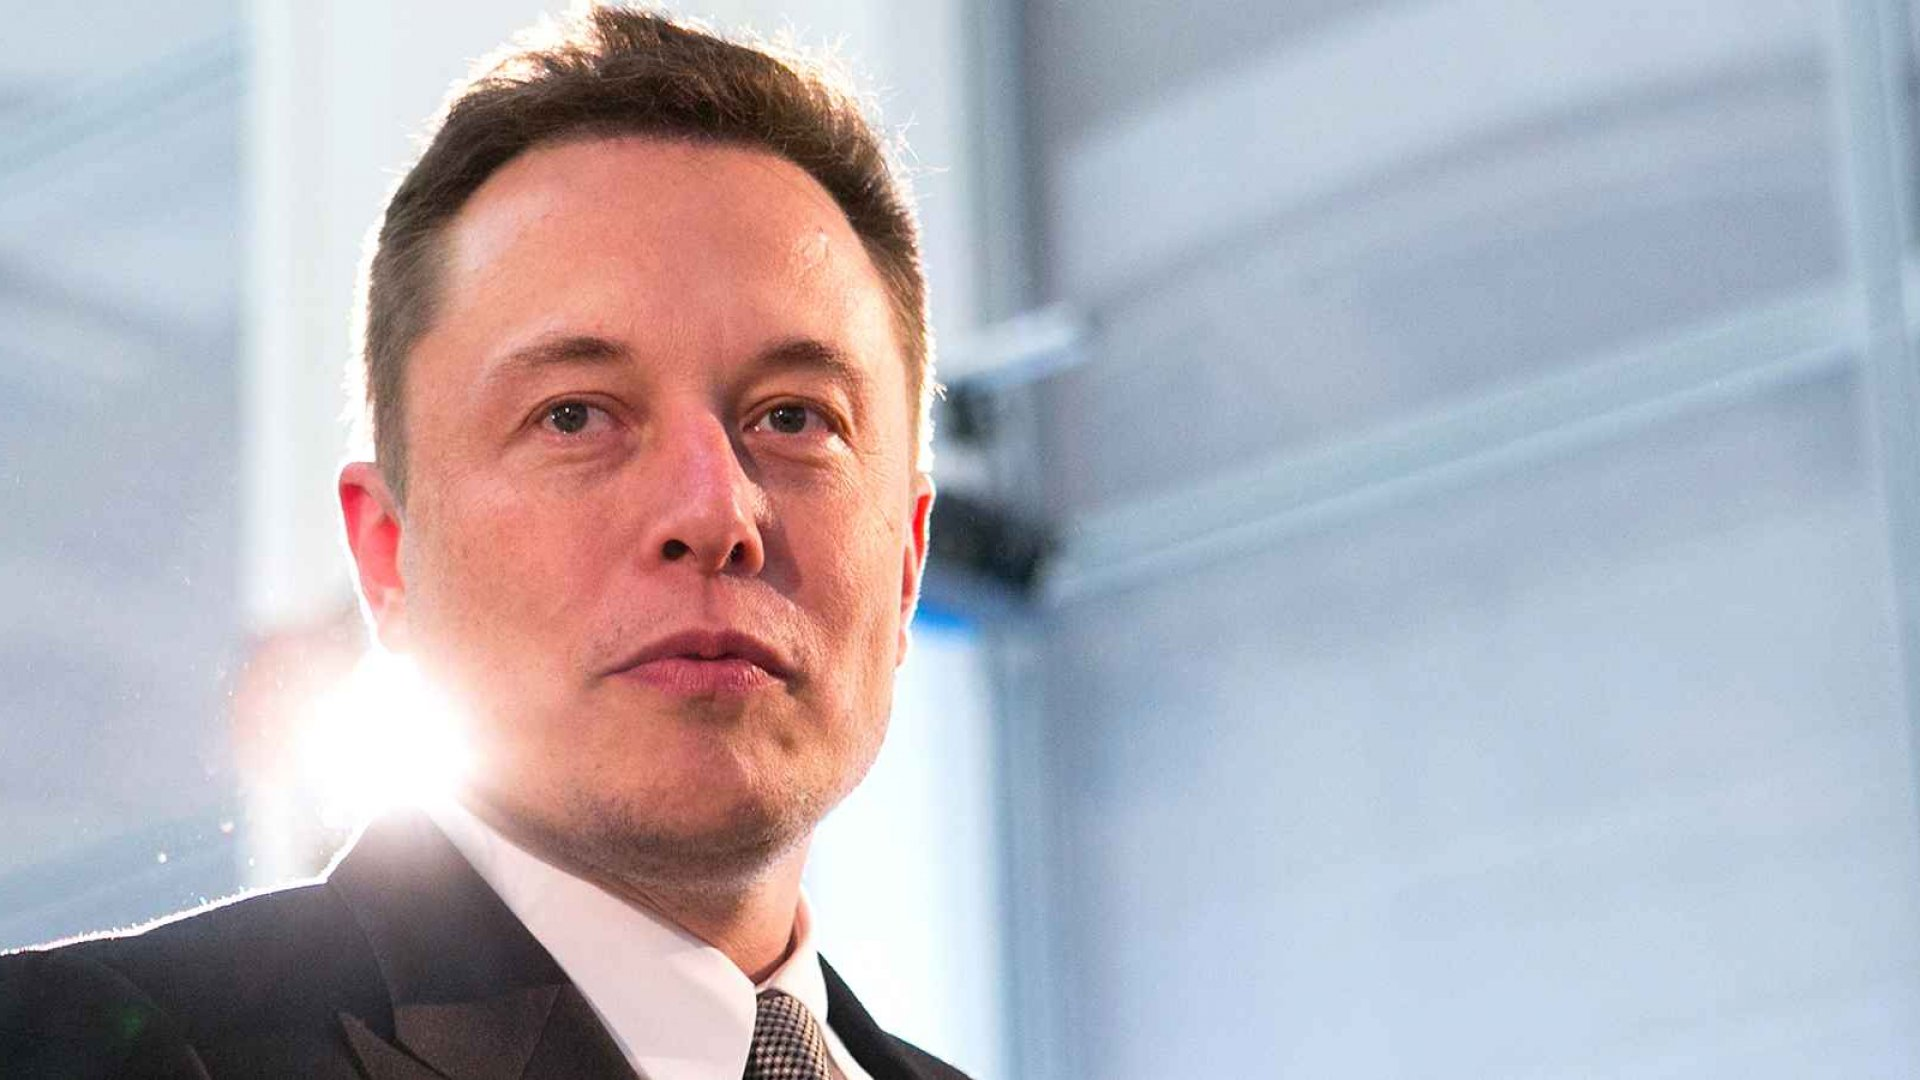 What Makes Tesla and SpaceX So Successful (It's Not the Cars or Rockets)